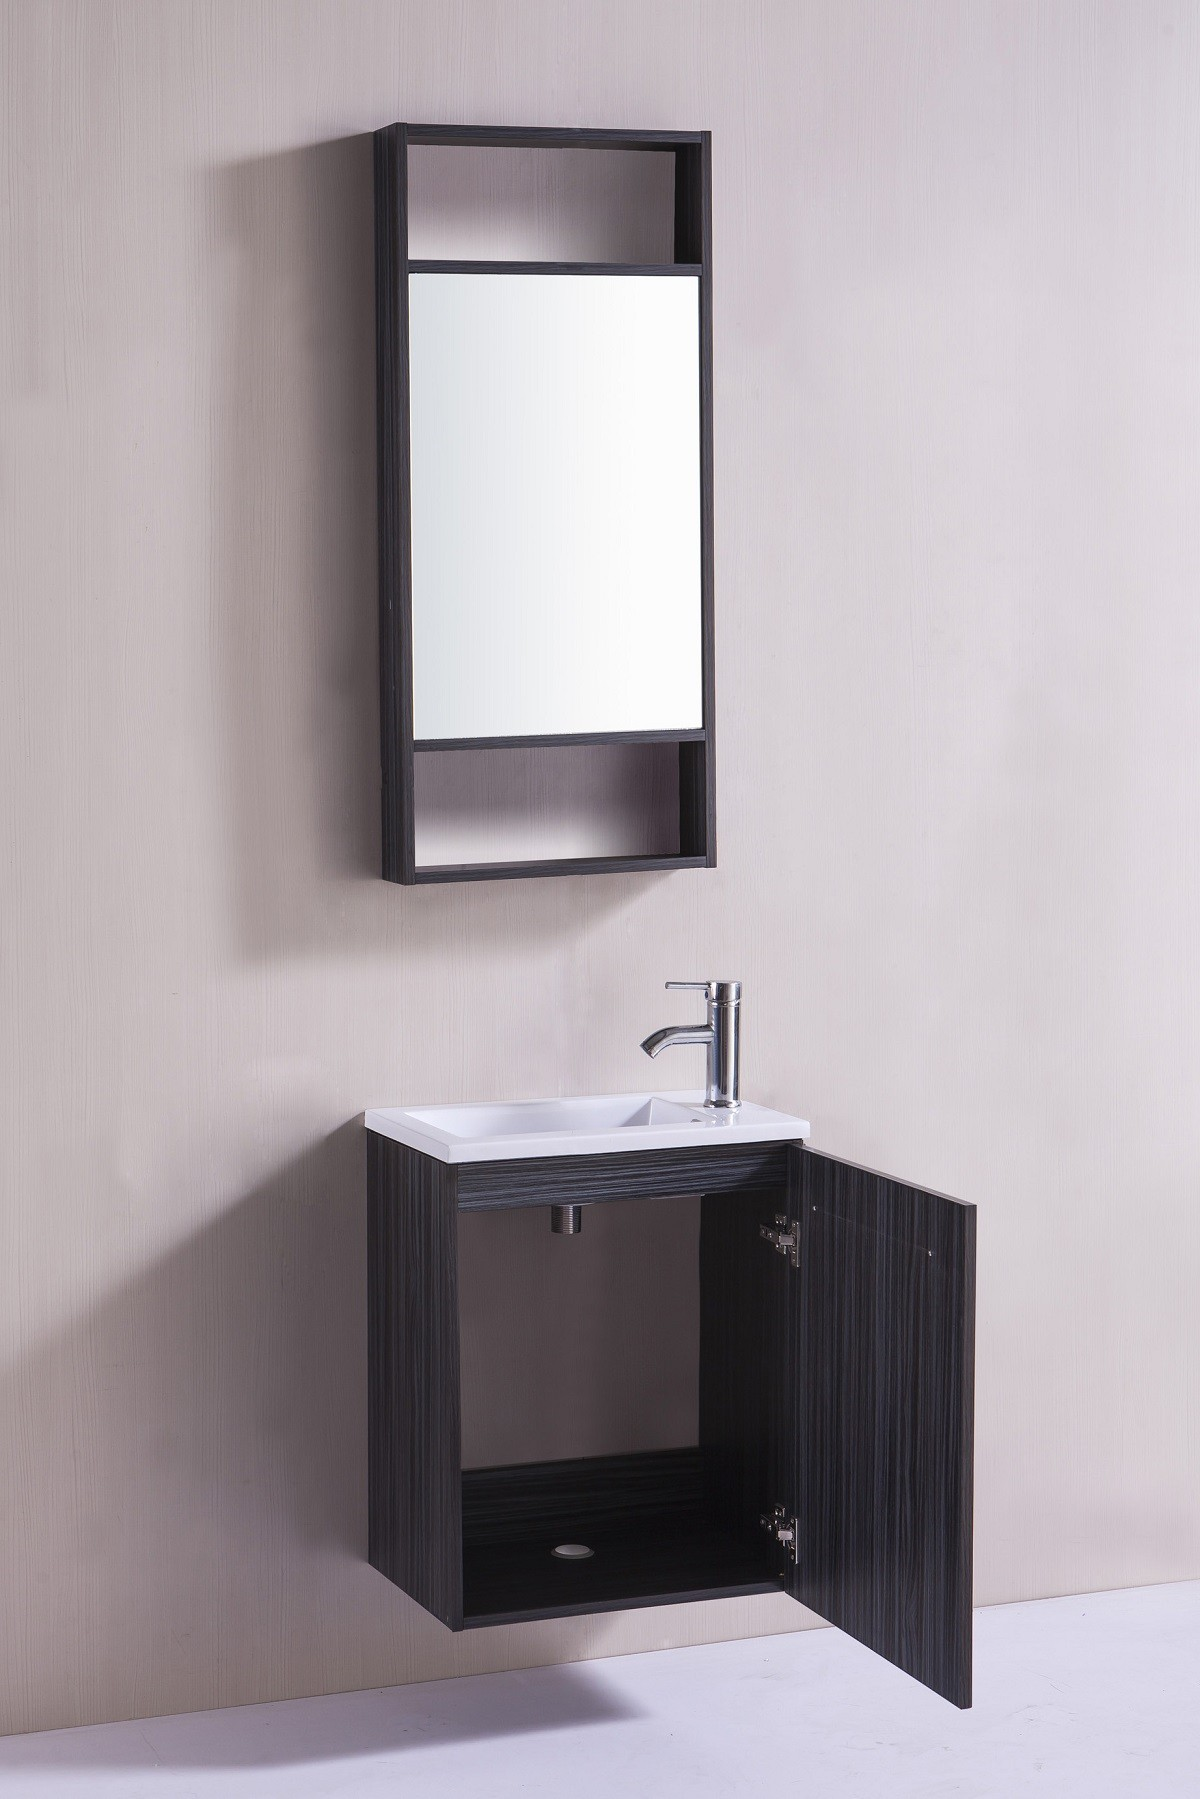 meuble lavabo toilette sanifun marco 50 commander aupr s du meilleur march des magasins de. Black Bedroom Furniture Sets. Home Design Ideas